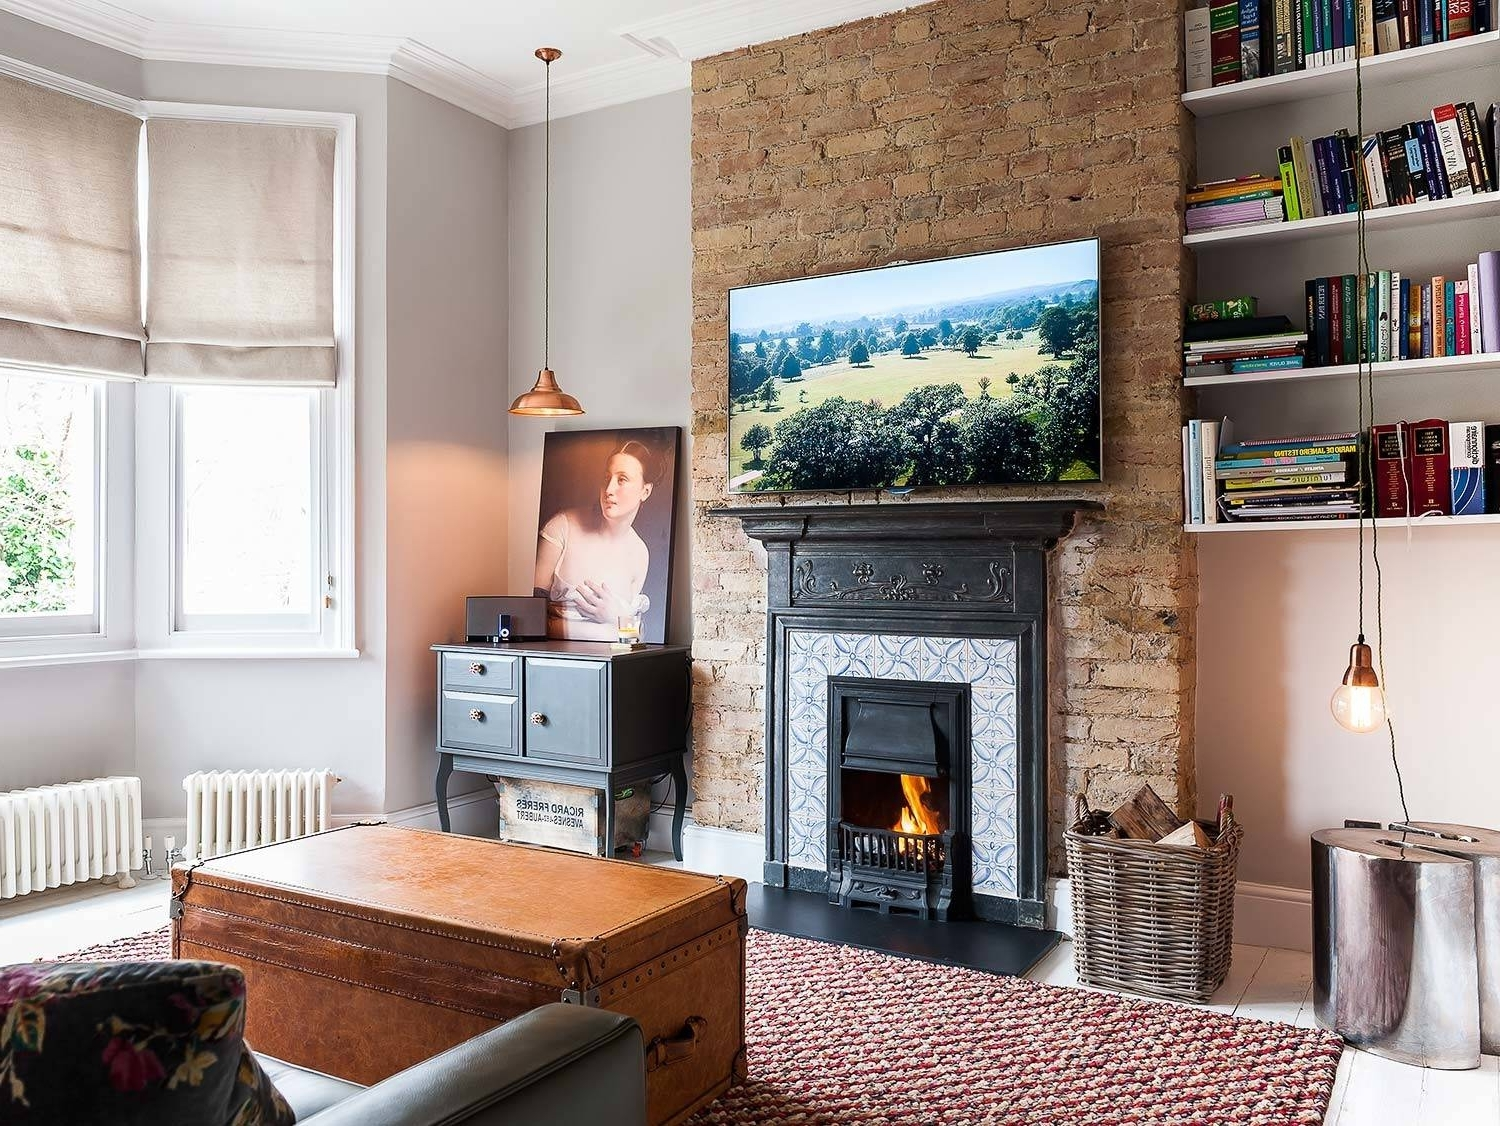 Chimney Breast Living Room Ideas & Photos | Houzz Small Living Room With Chimney Breast